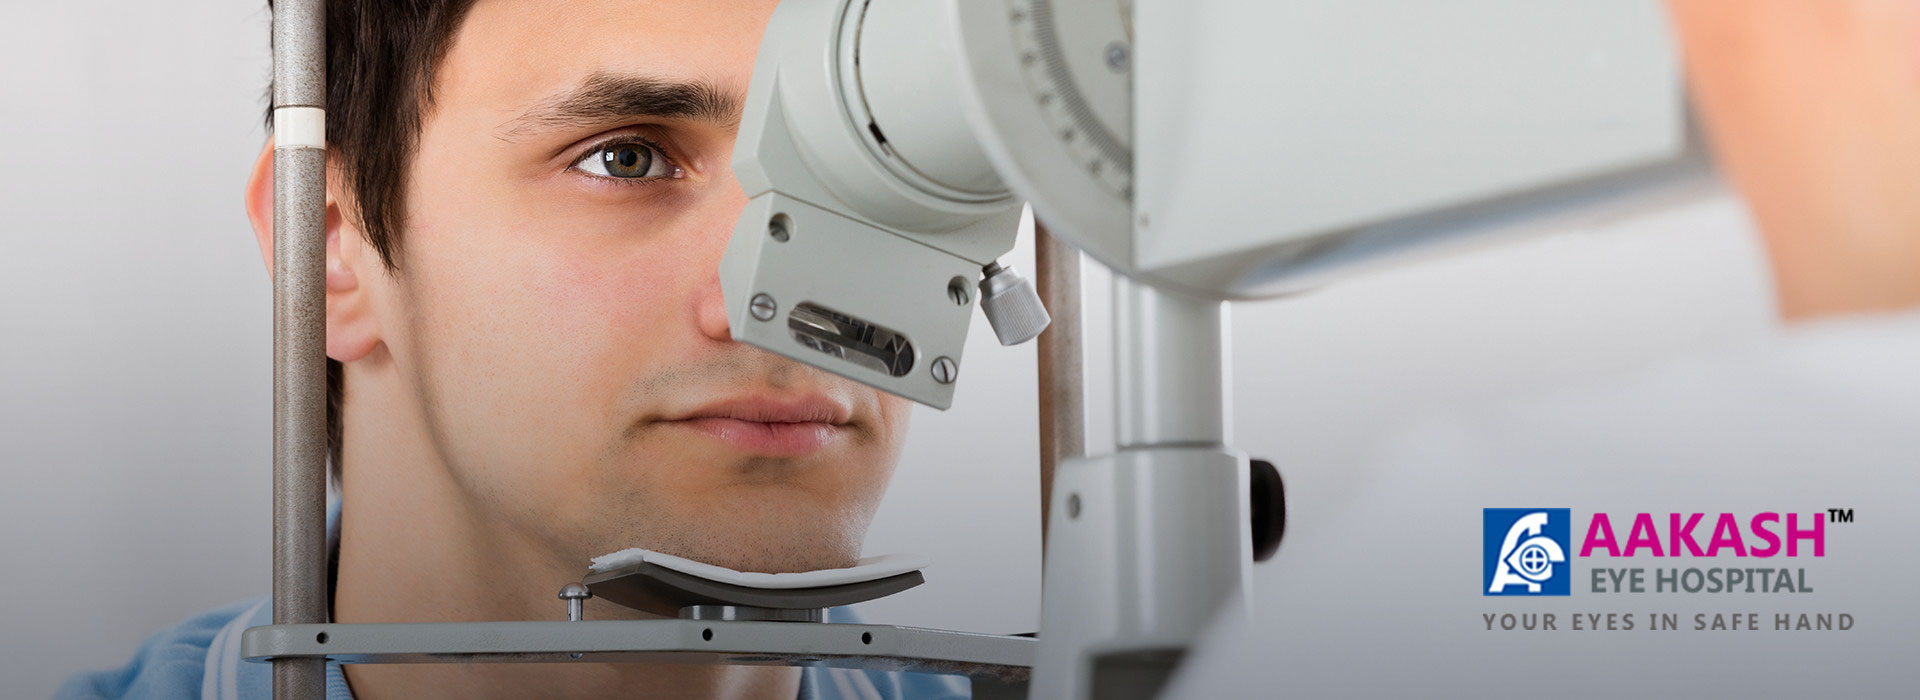 Eye Care Hospital Eye Specialist Instant Appointment